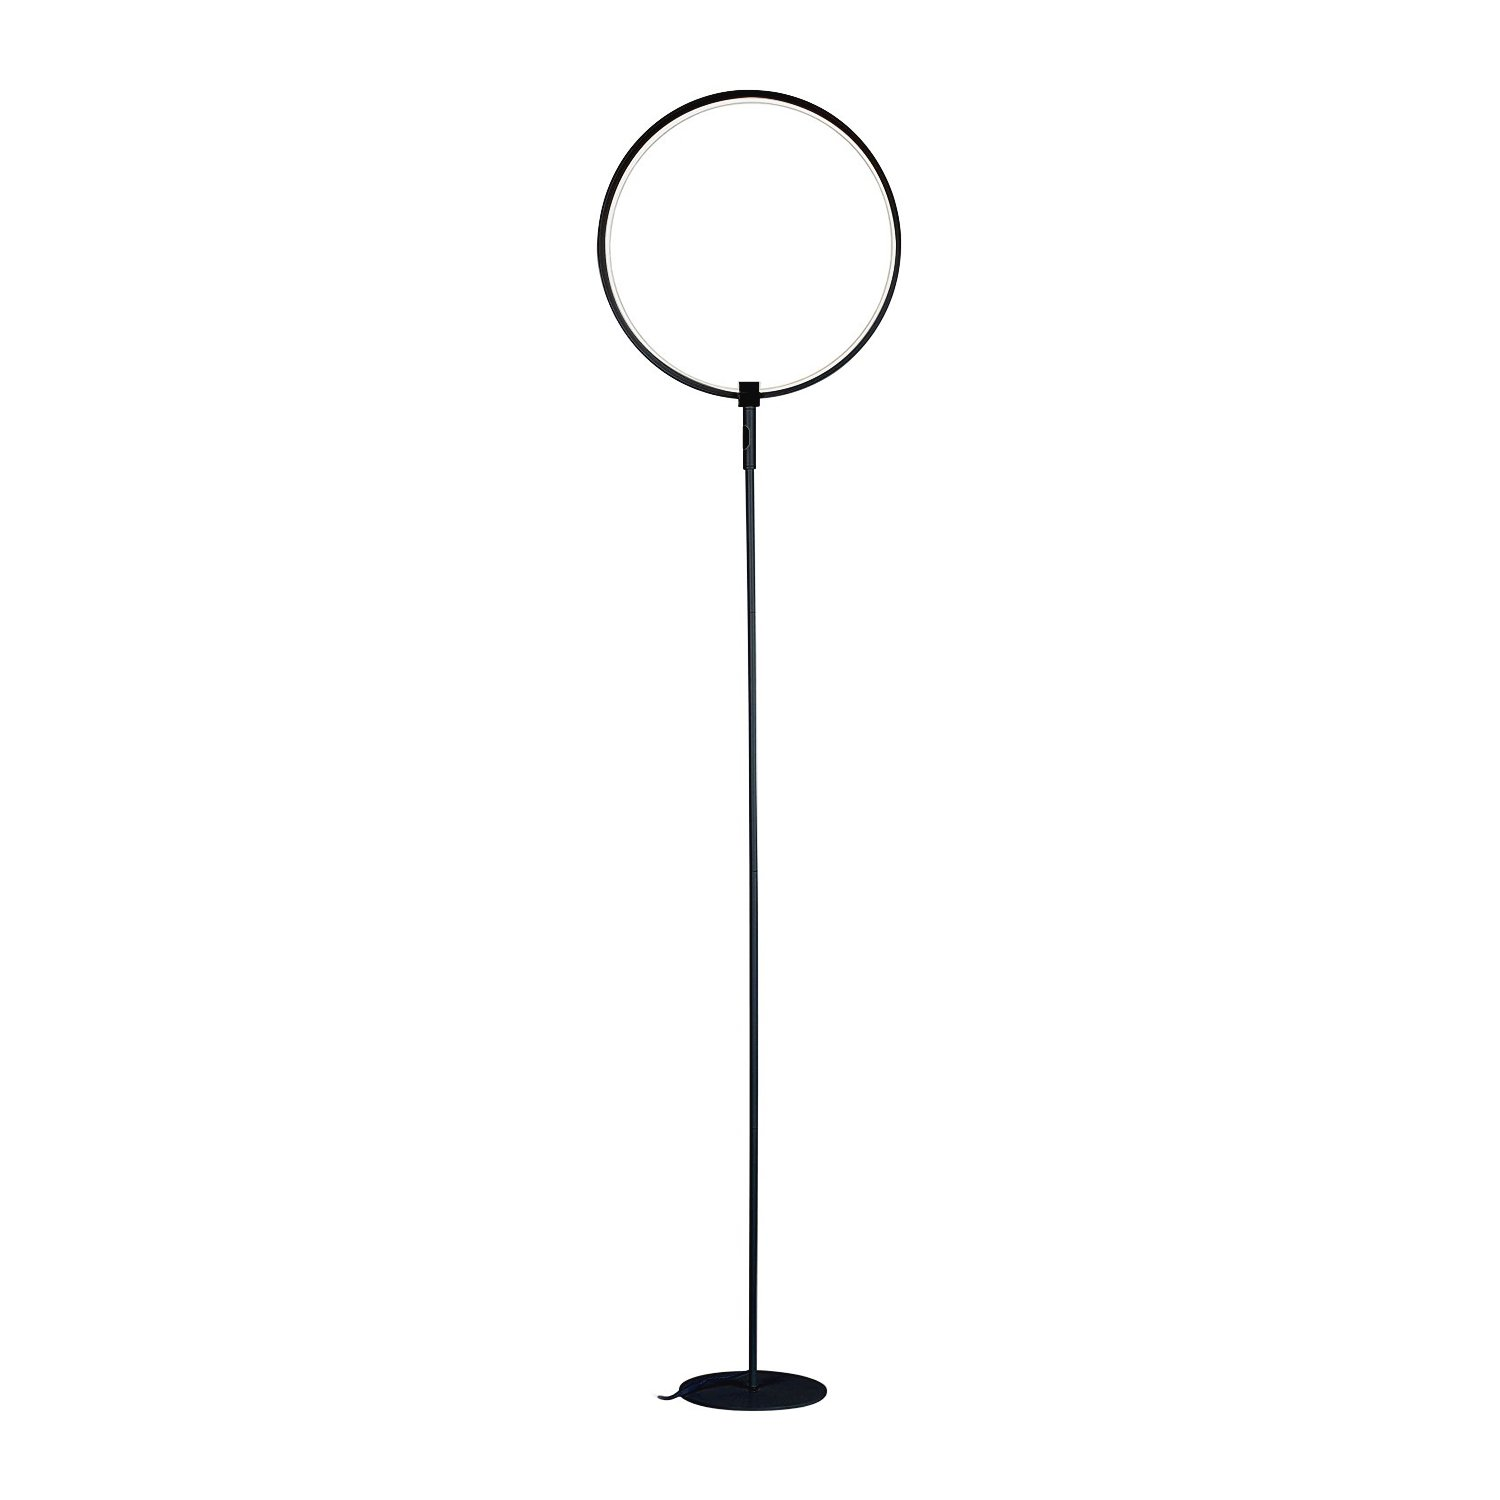 Brightech – Eclipse LED Floor Lamp Single Ring – Ring of Light Brings Sci-Fi Ambiance to Contemporary Spaces – 15 Watts – Dimmable Bright Light - Black Finish